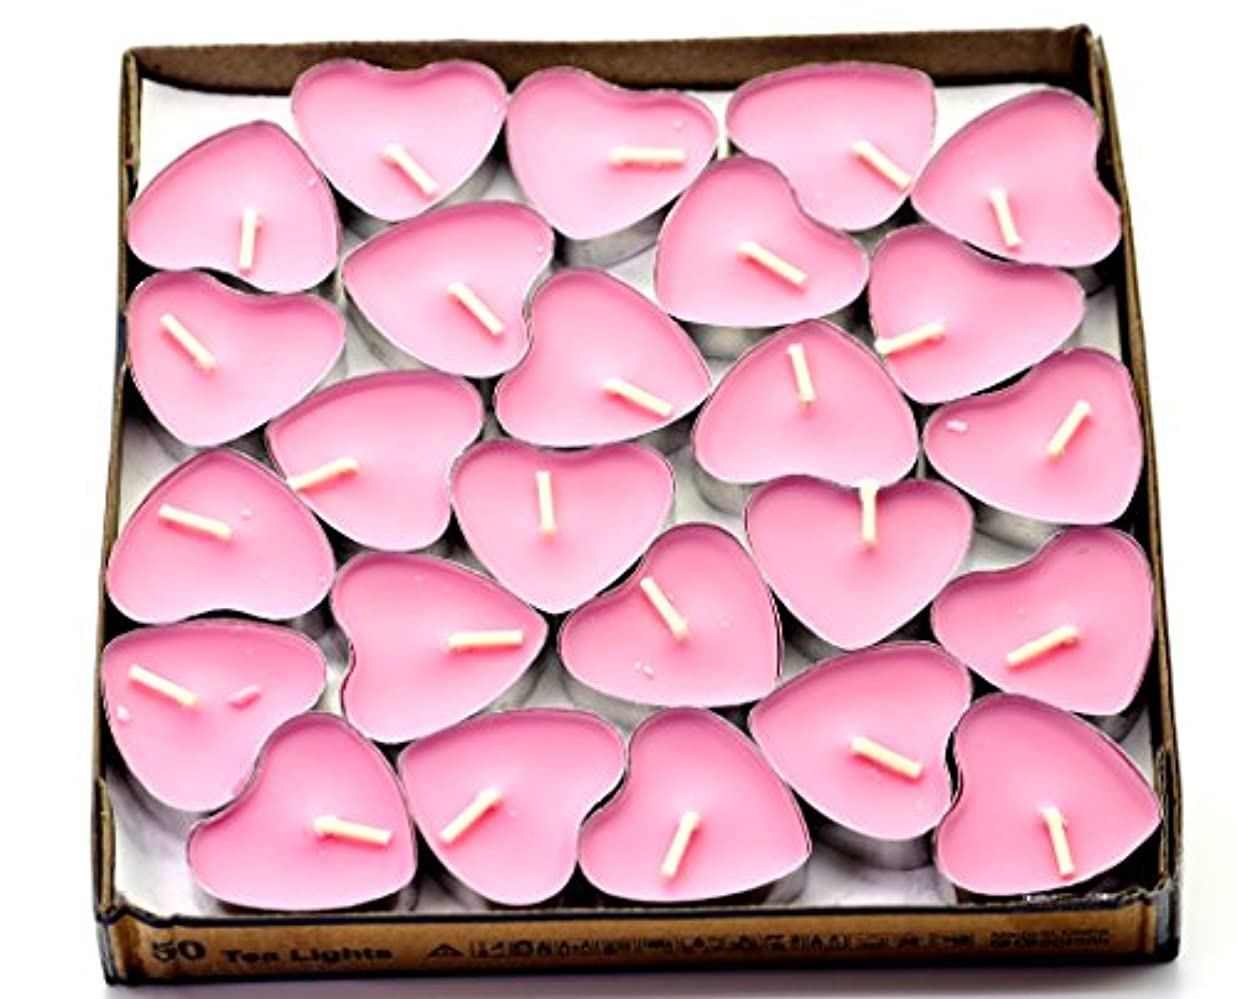 (Pink(rose)) - Creationtop Scented Candles Tea Lights Mini Hearts Home Decor Aroma Candles Set of 50 pcs mini...